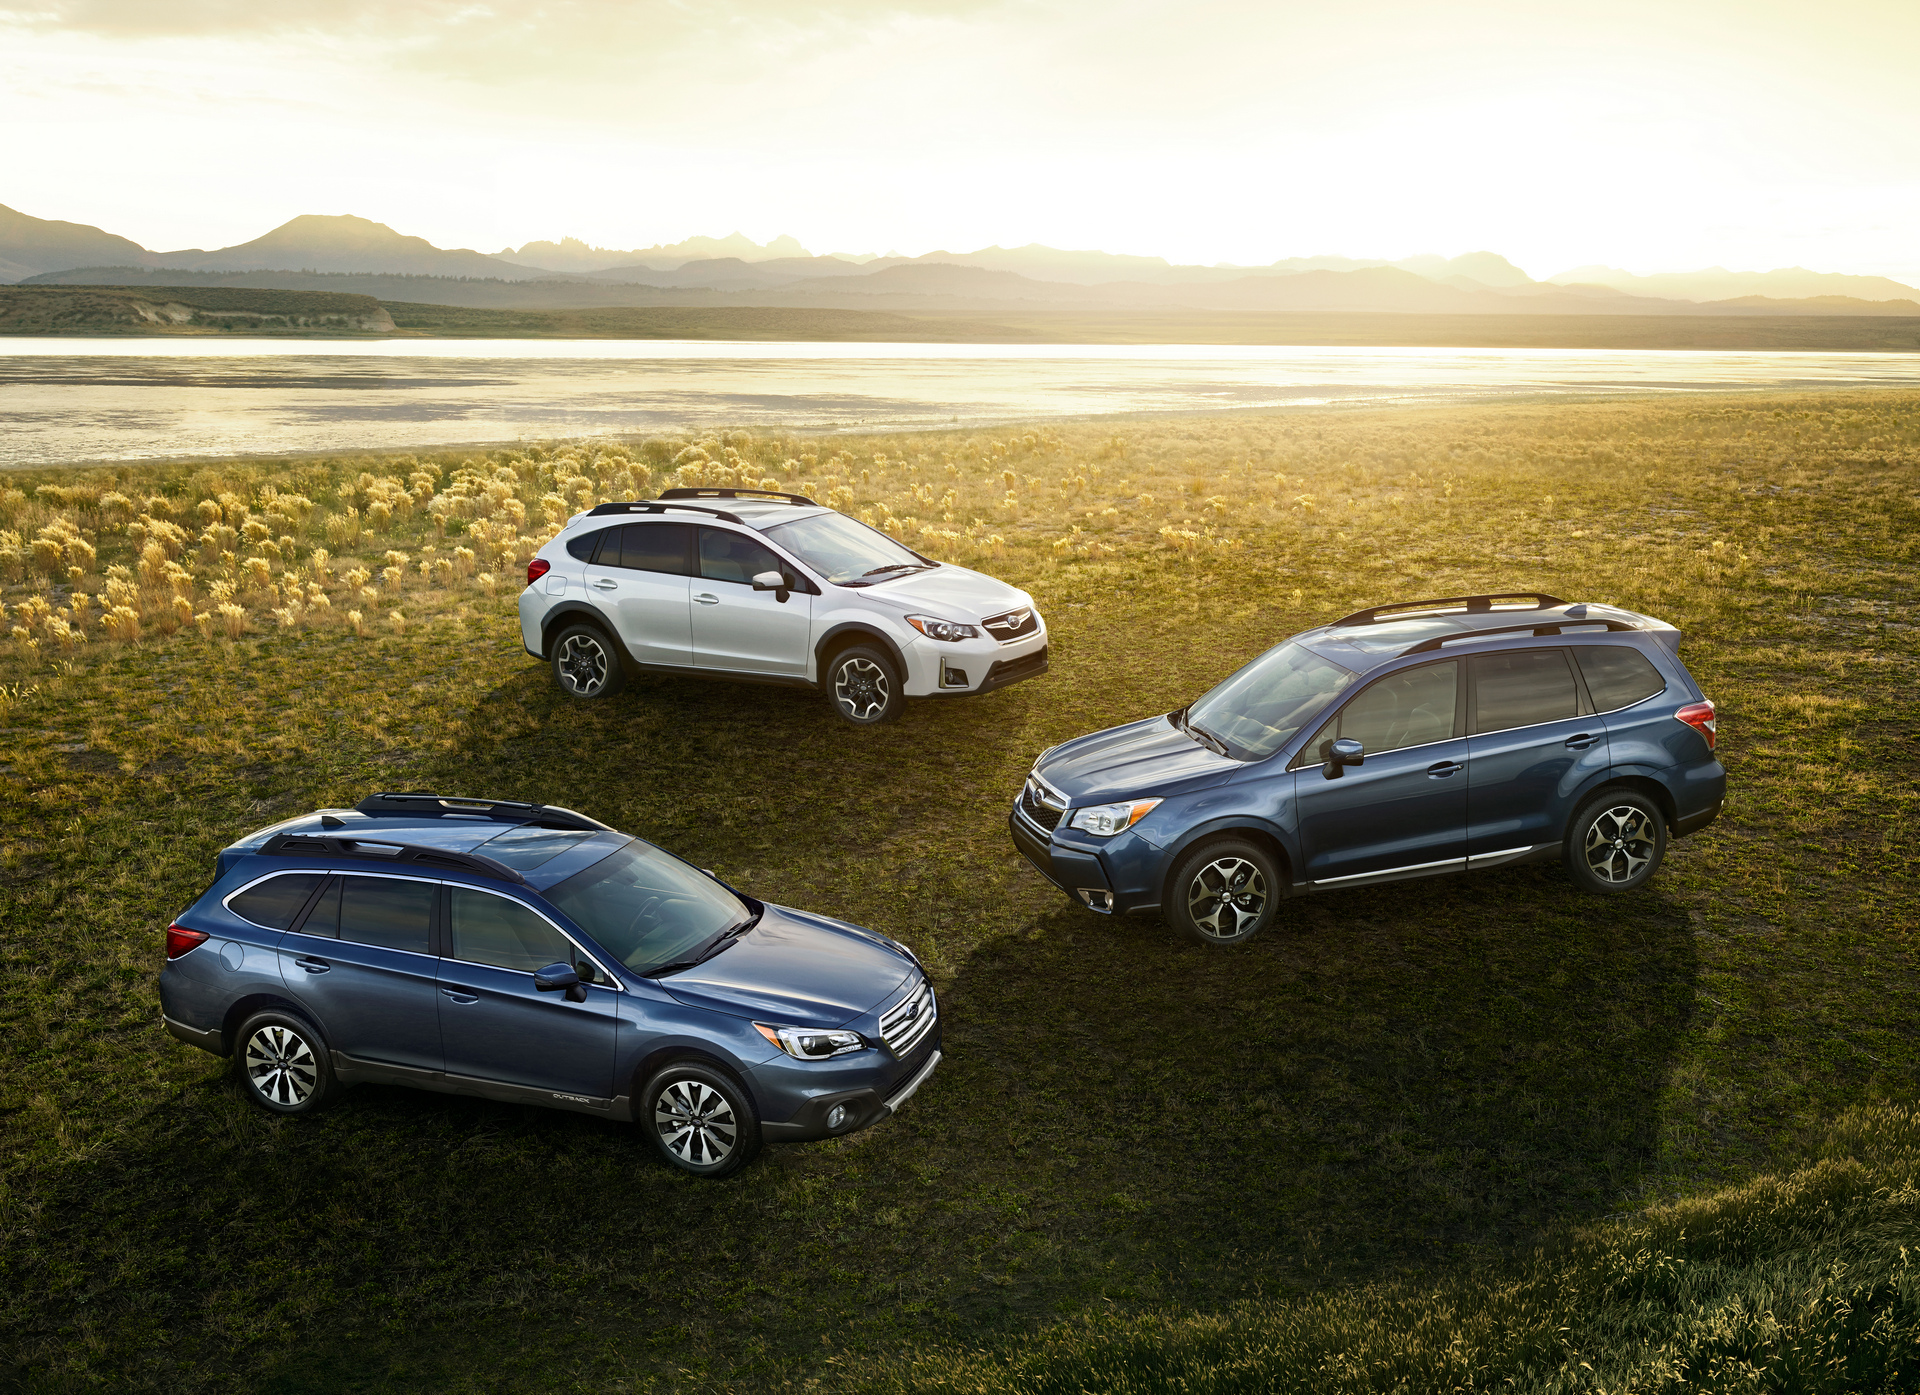 Subaru Sweeps Crossover SUV Segment for 2016 Autopacific Ideal Vehicle Awards © Fuji Heavy Industries, Ltd.